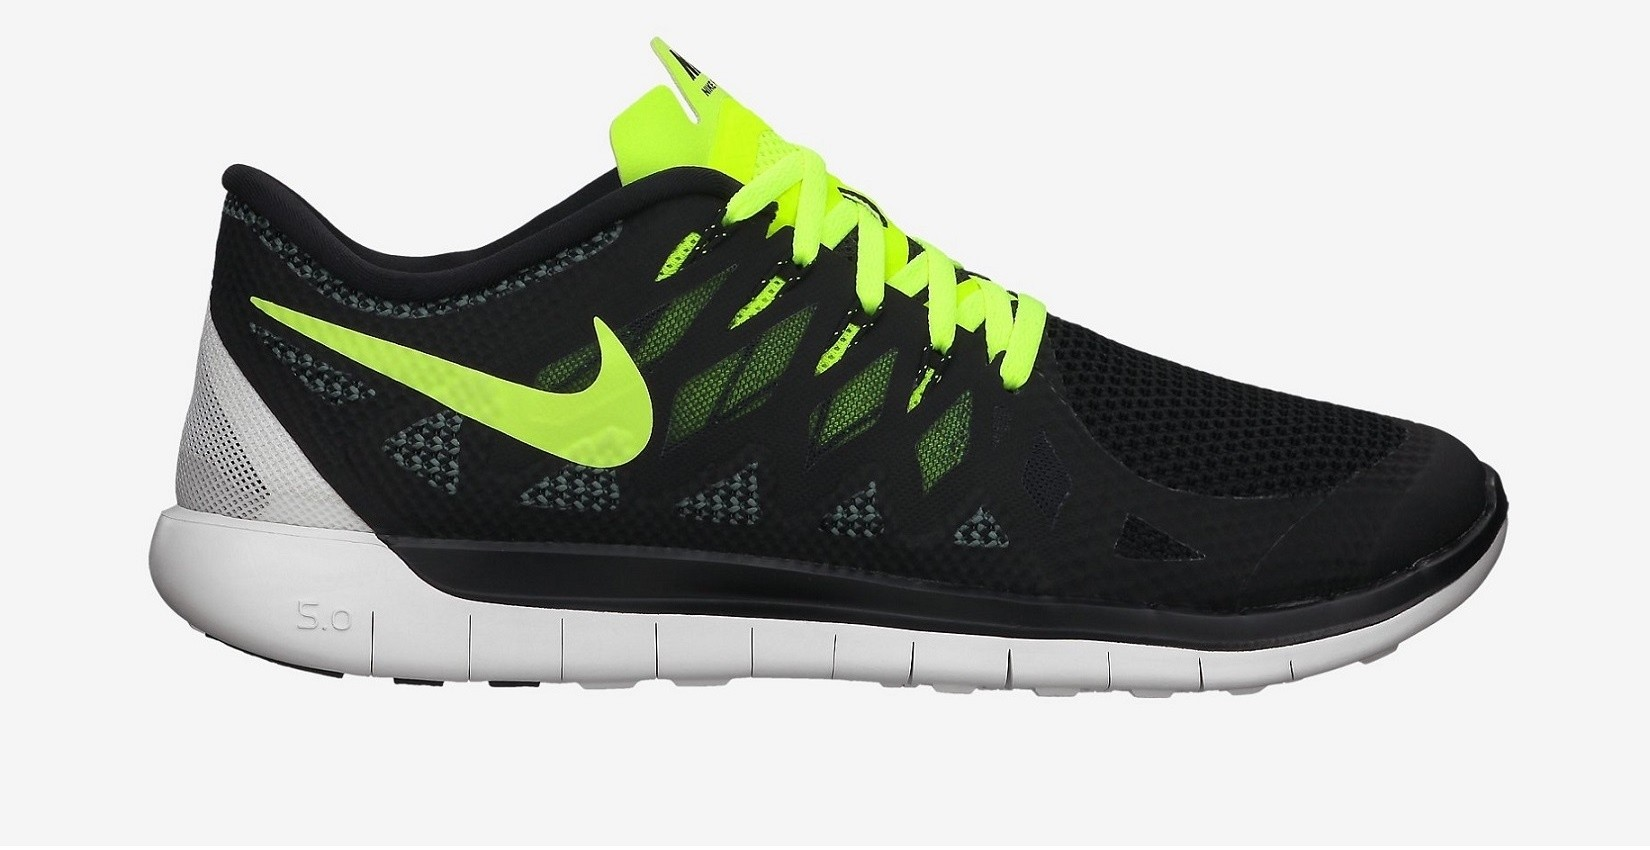 quality design cc141 afcb8 ... new style nike free run 5.0 homme abordablenike free run 5.0 homme  noire chaussures de running